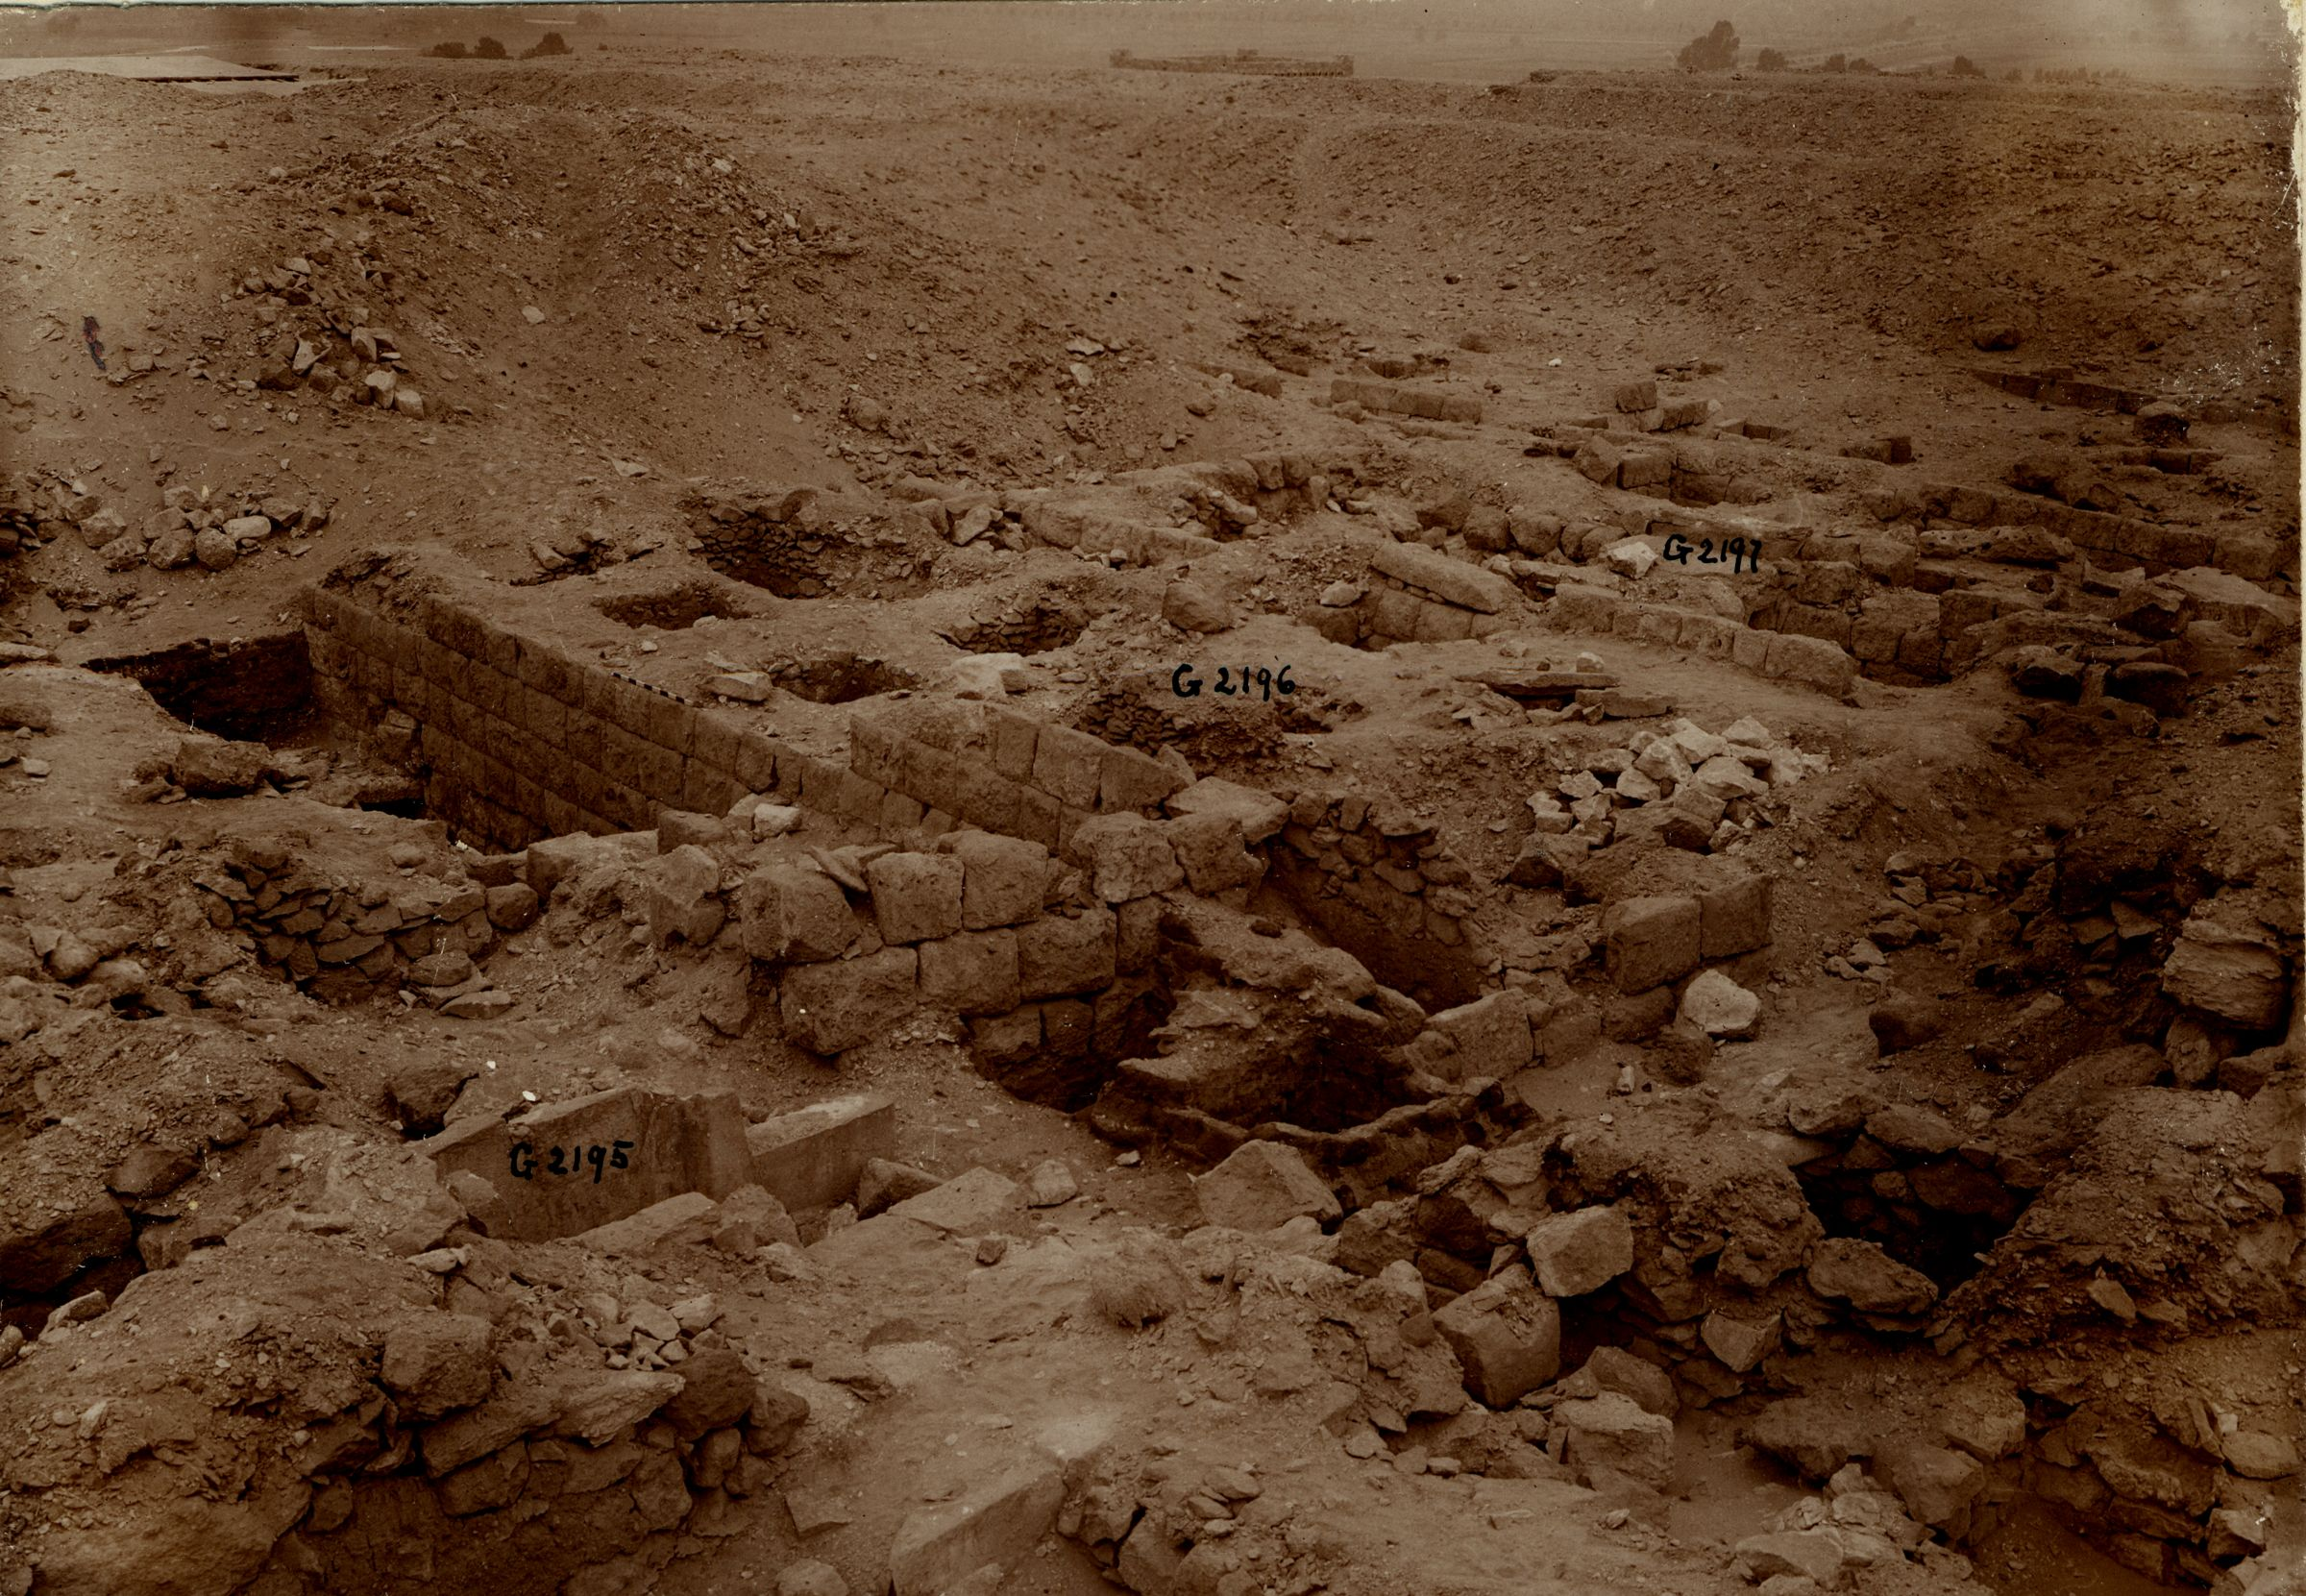 Western Cemetery: Site: Giza; View: G 2195, G 2188, G 2196, G 2197